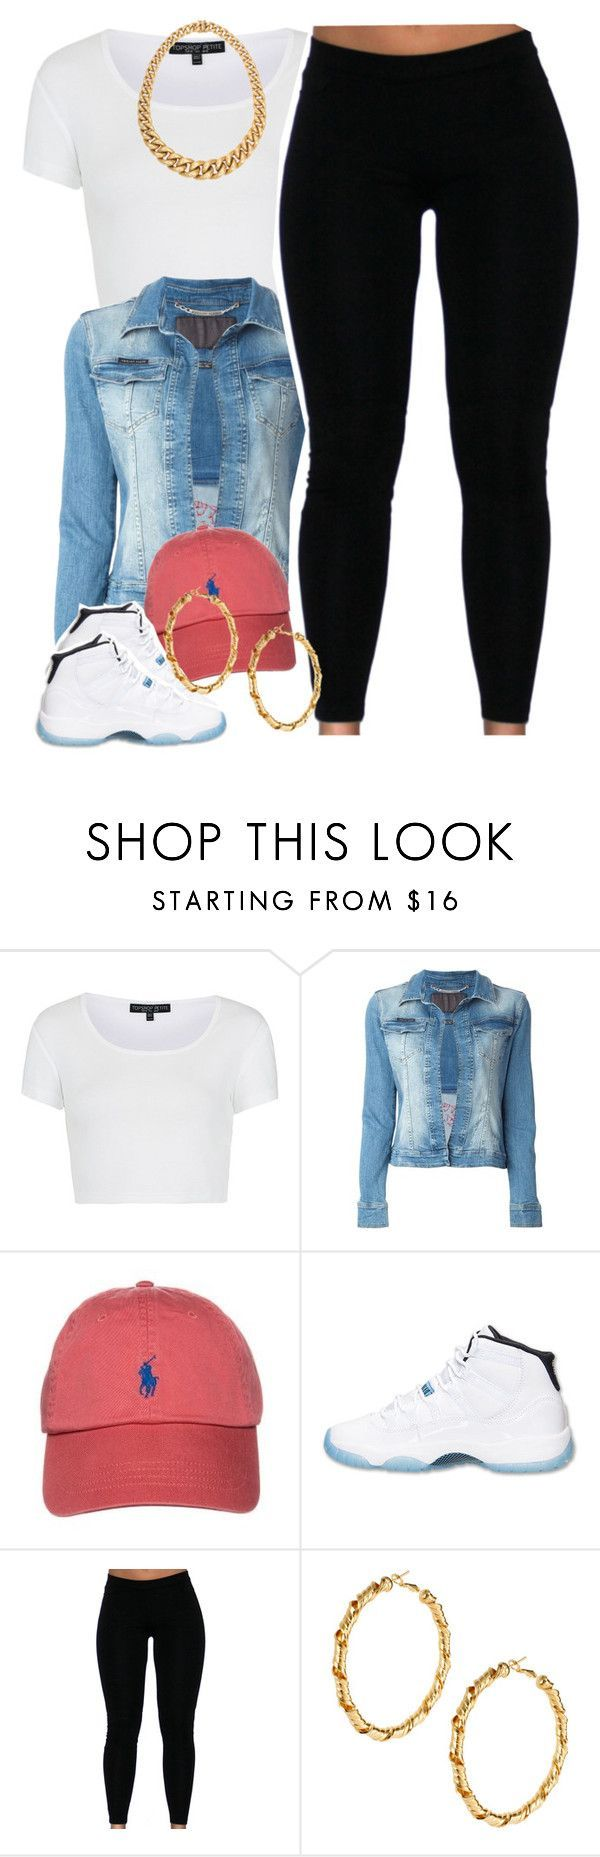 353a5667dfcc8e Untitled  1400 by lulu-foreva ❤ liked on Polyvore featuring moda ...